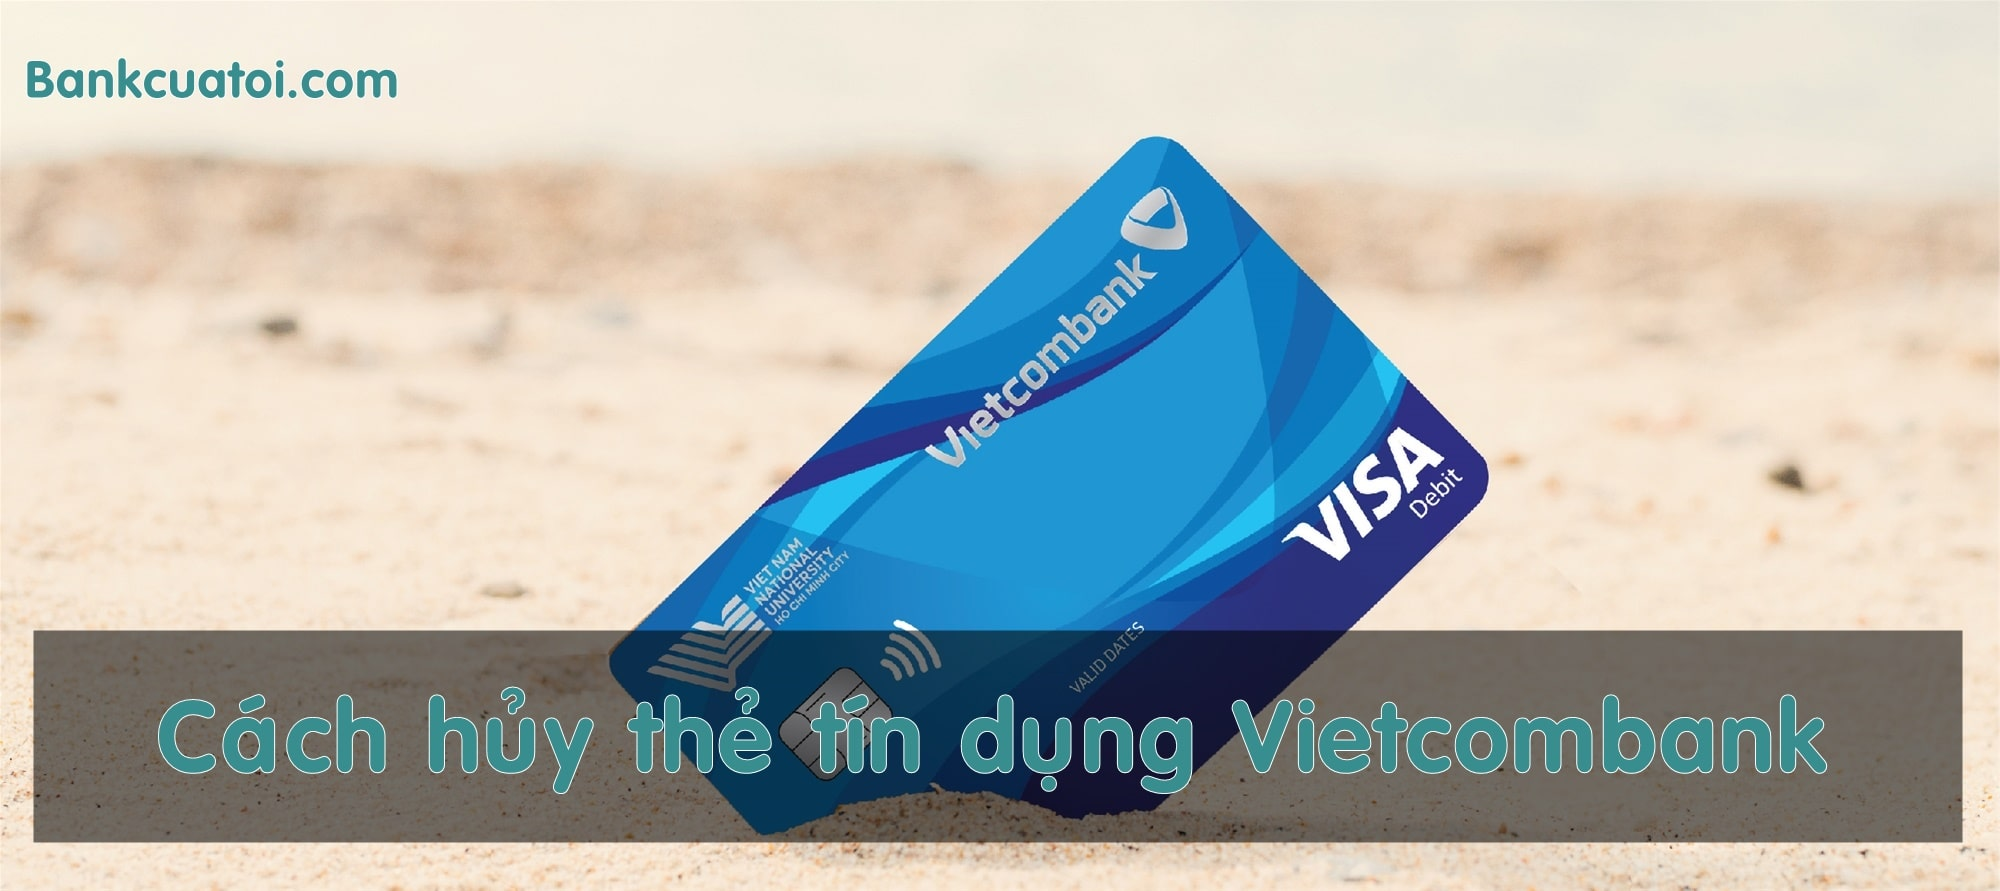 Cach huy the tin dung vietcombank